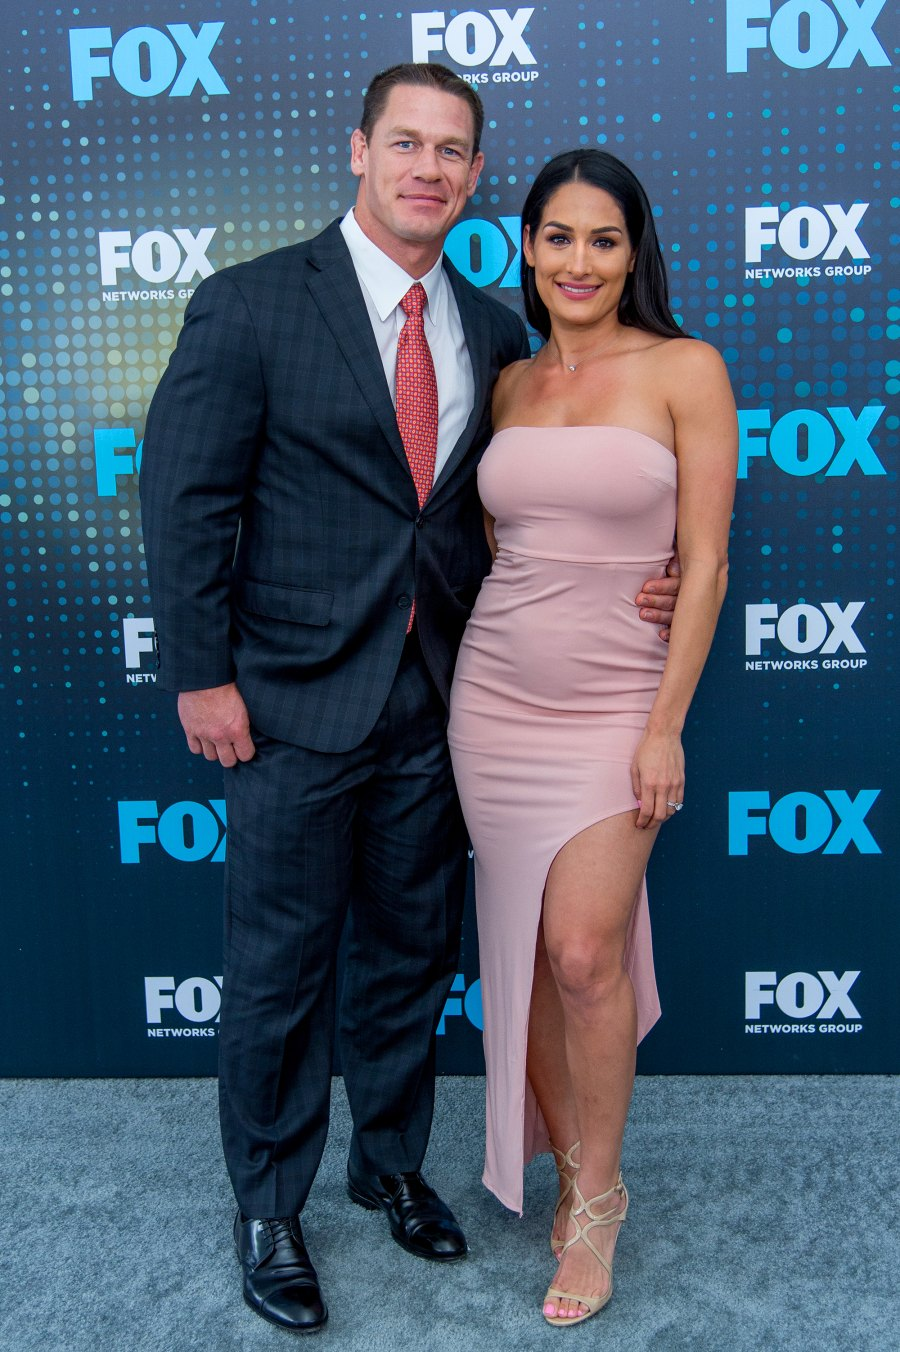 Everything John Cena and Nikki Bella Have Said About Their Broken Engagement